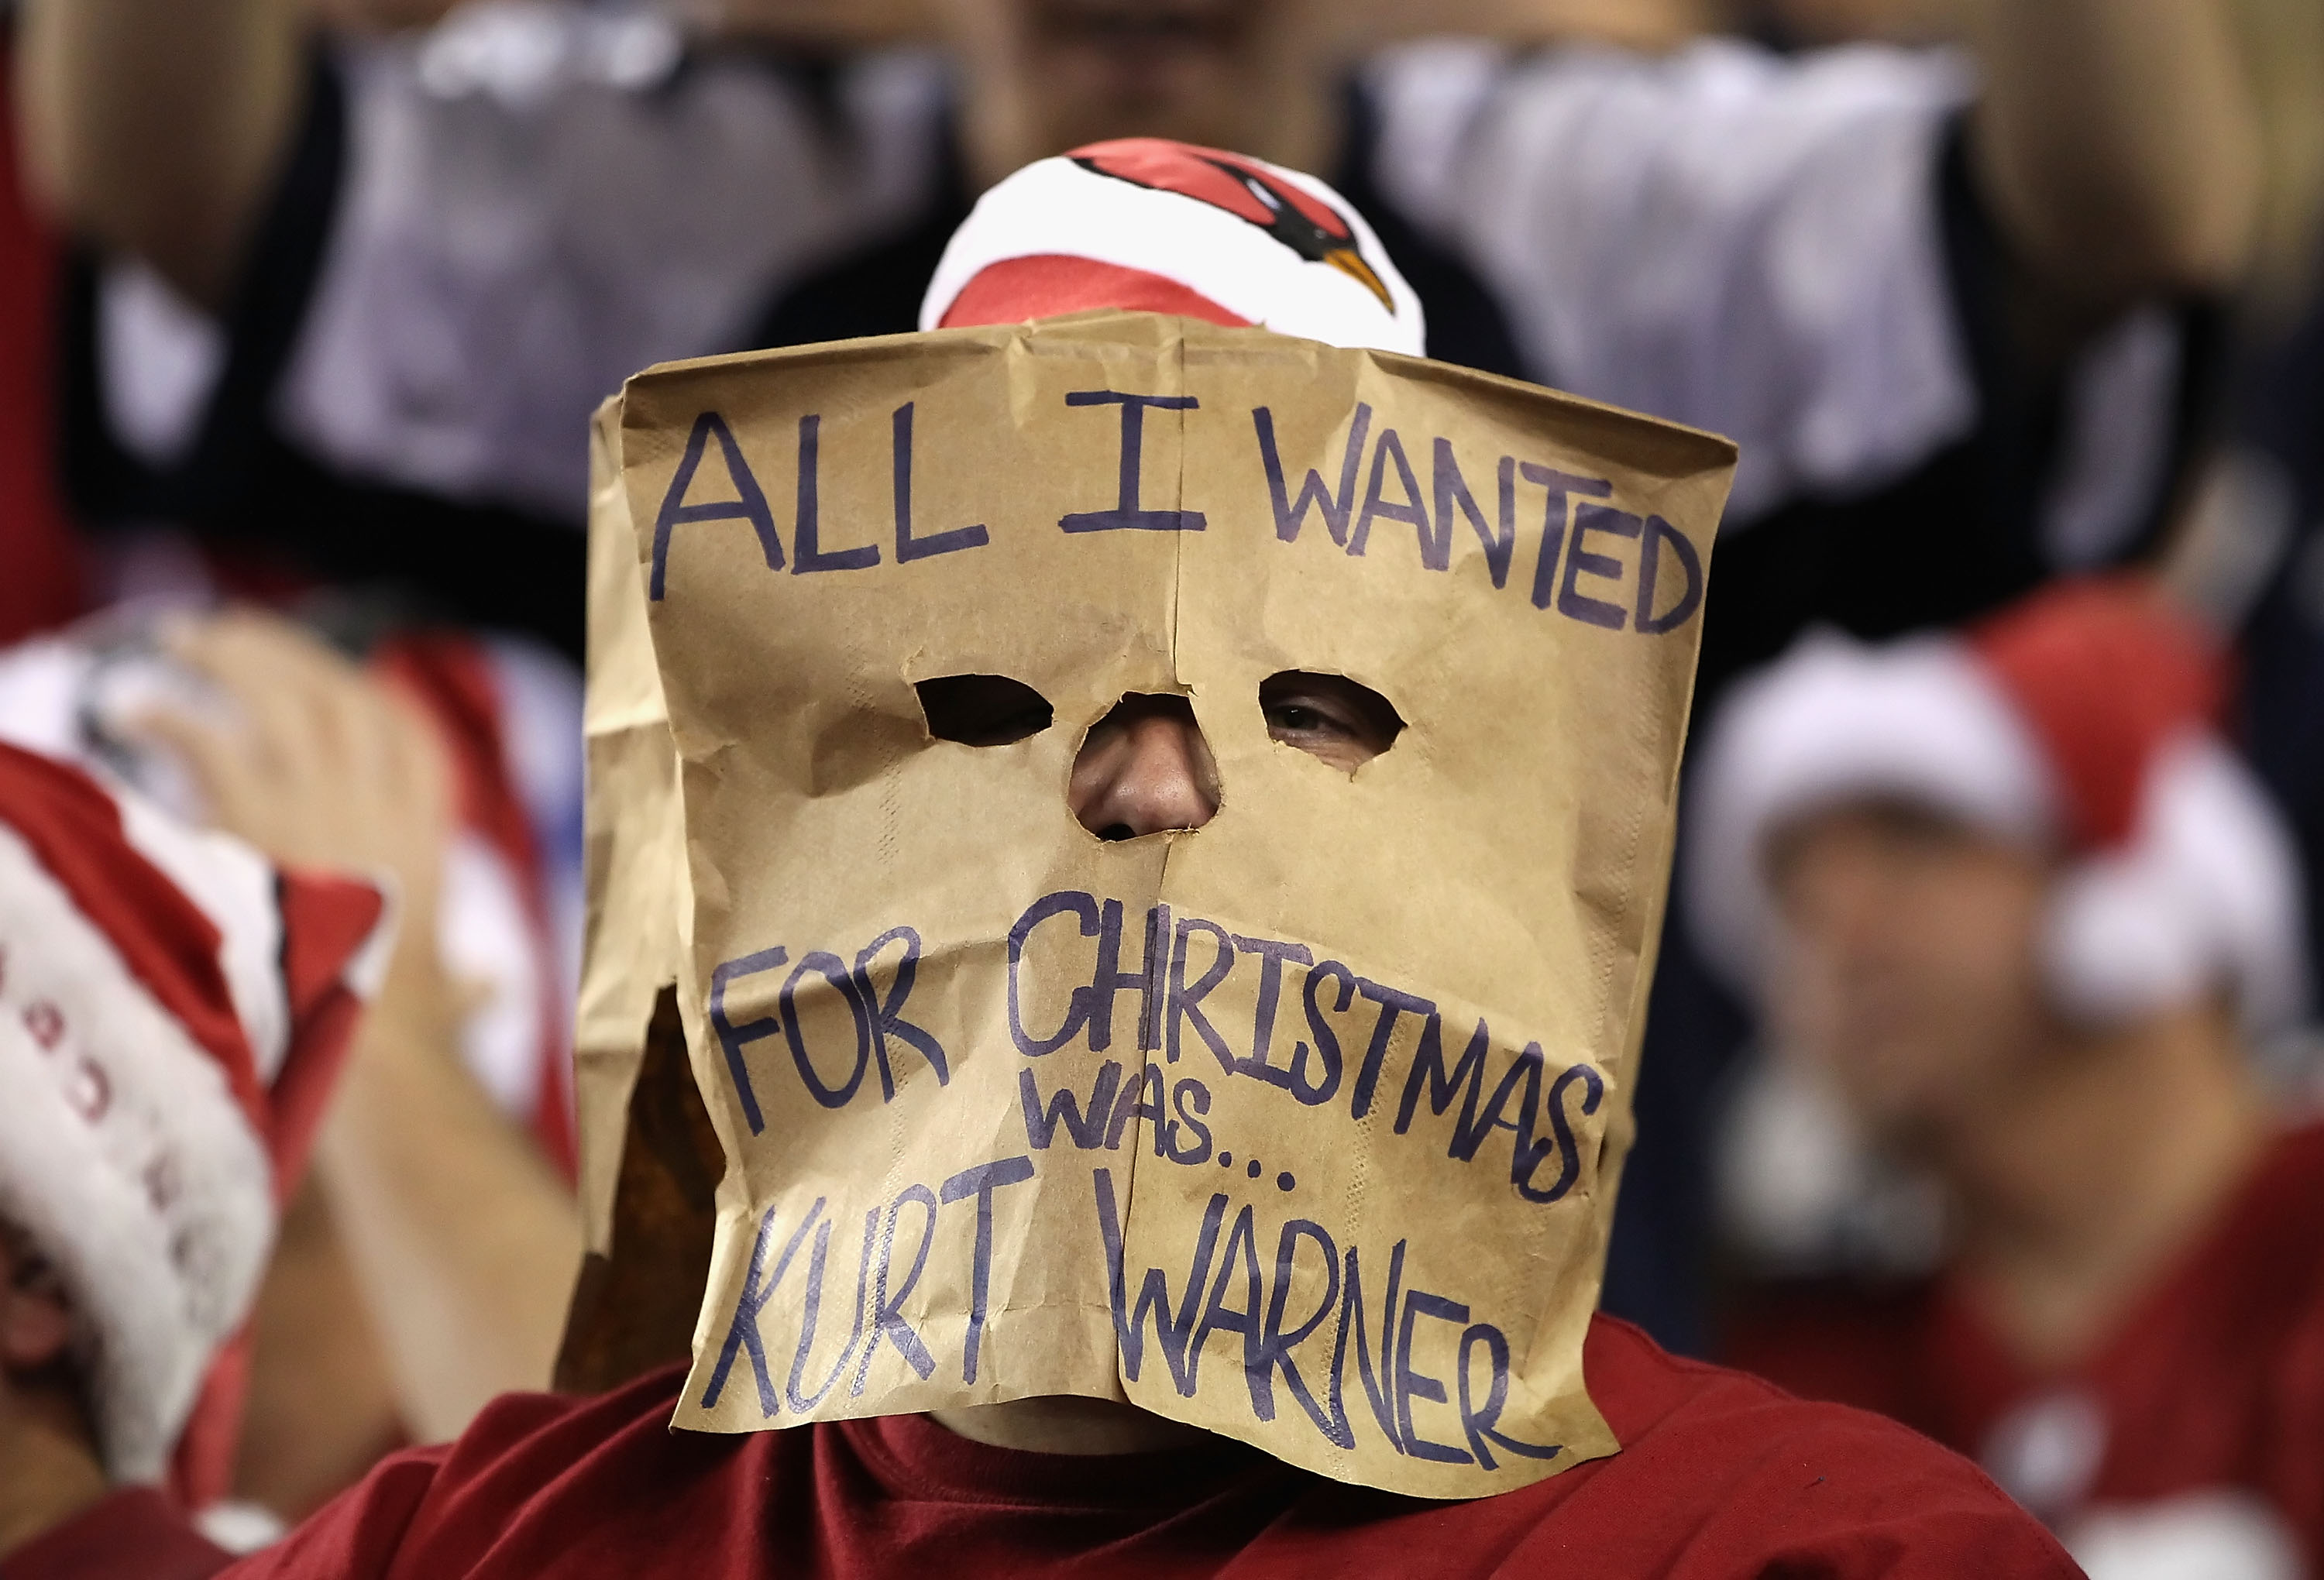 If Kurt Warner joins your team, don't let him leave. He will wreck it.